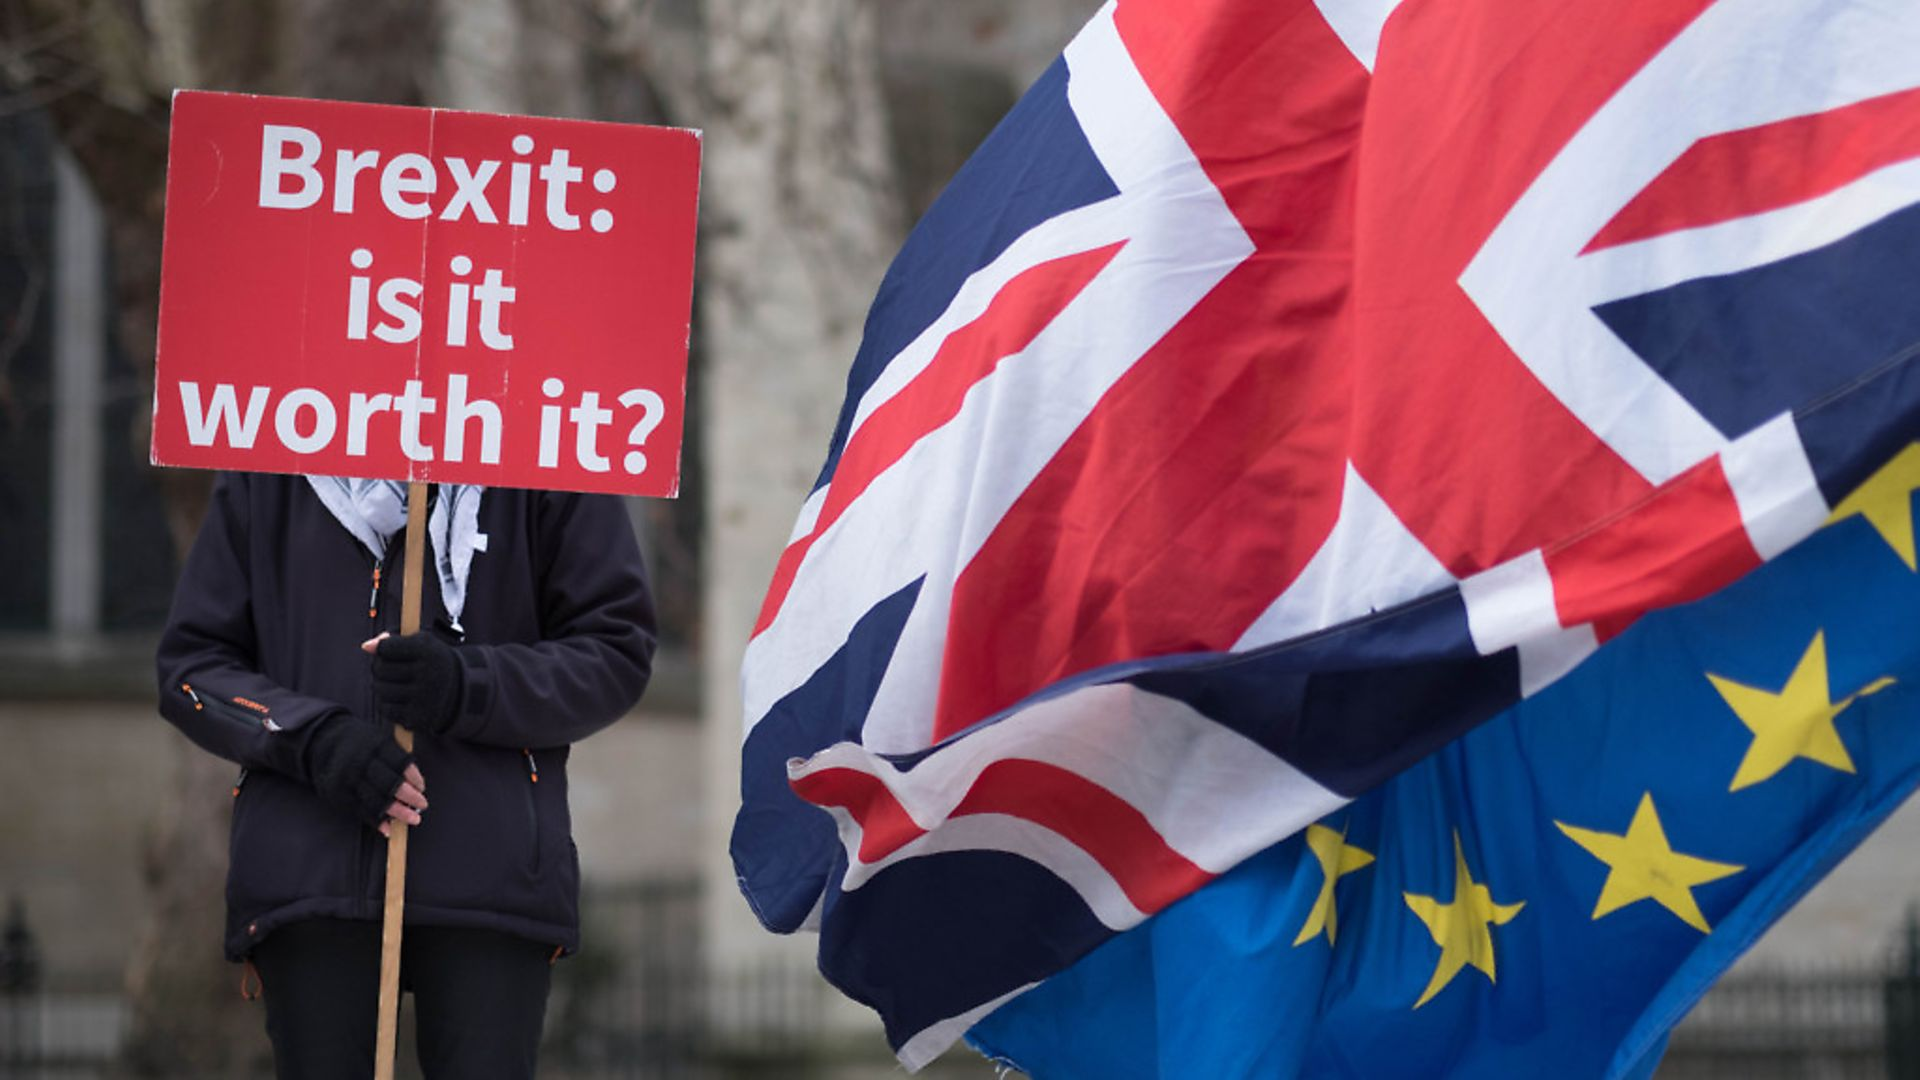 Anti Brexit demonstrators outside the Houses of Parliament in London. Photograph: Stefan Rousseau/PA. - Credit: PA Archive/PA Images